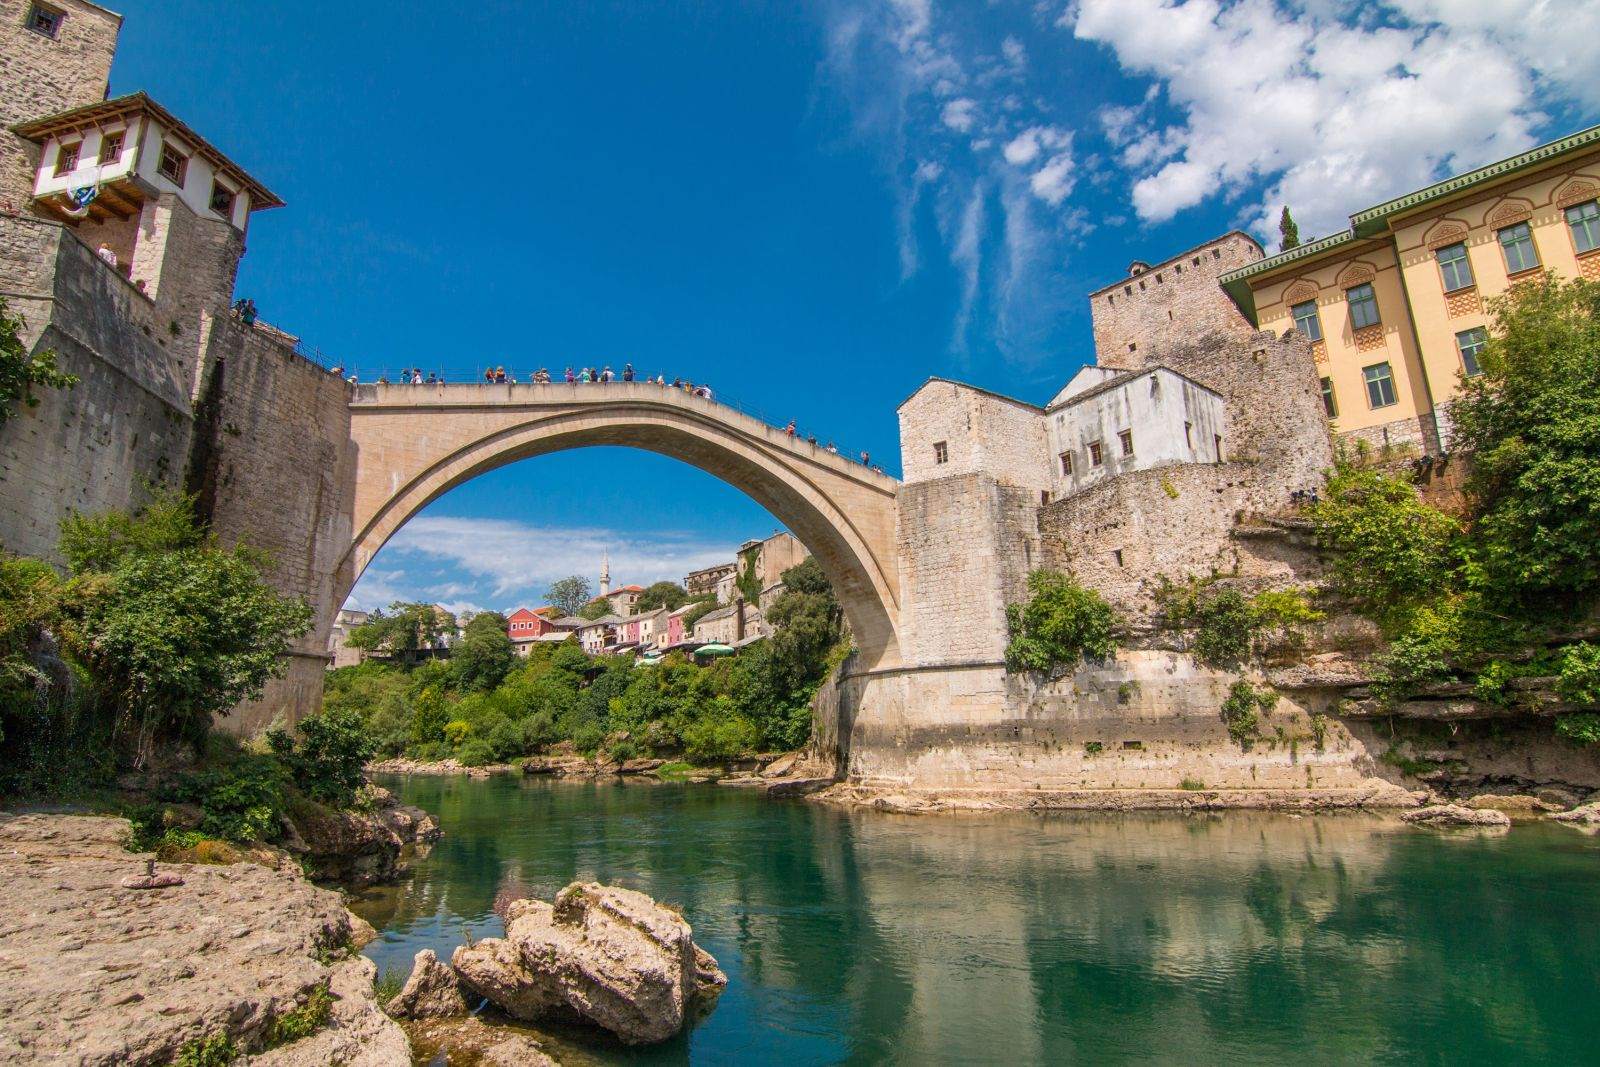 -images-excursions-clash-of-cultures-5-a-mostar.jpg